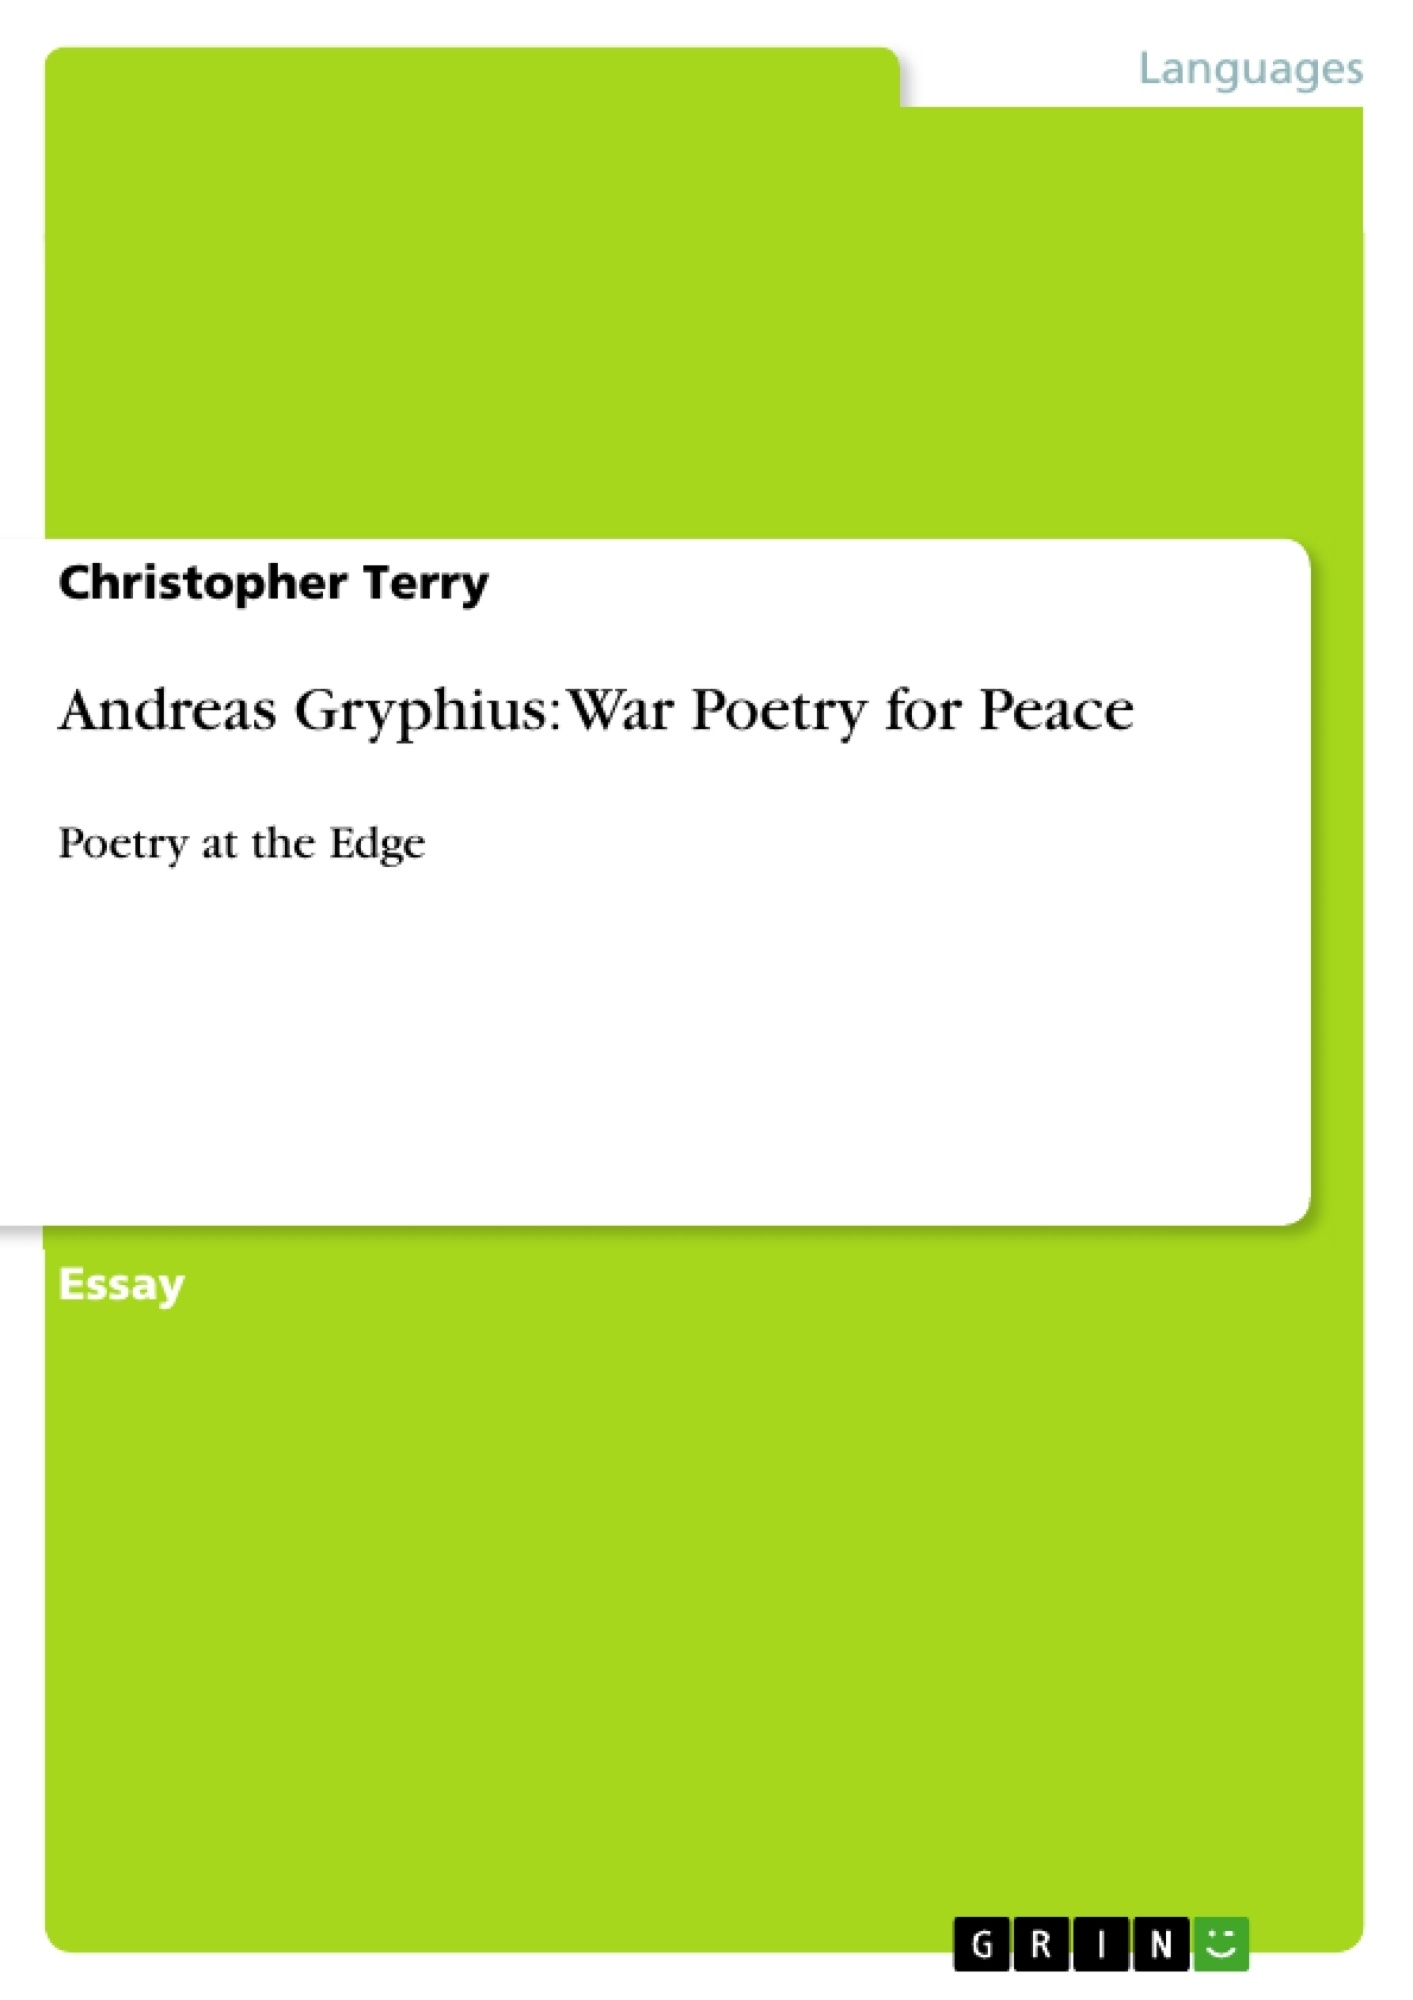 Title: Andreas Gryphius: War Poetry for Peace